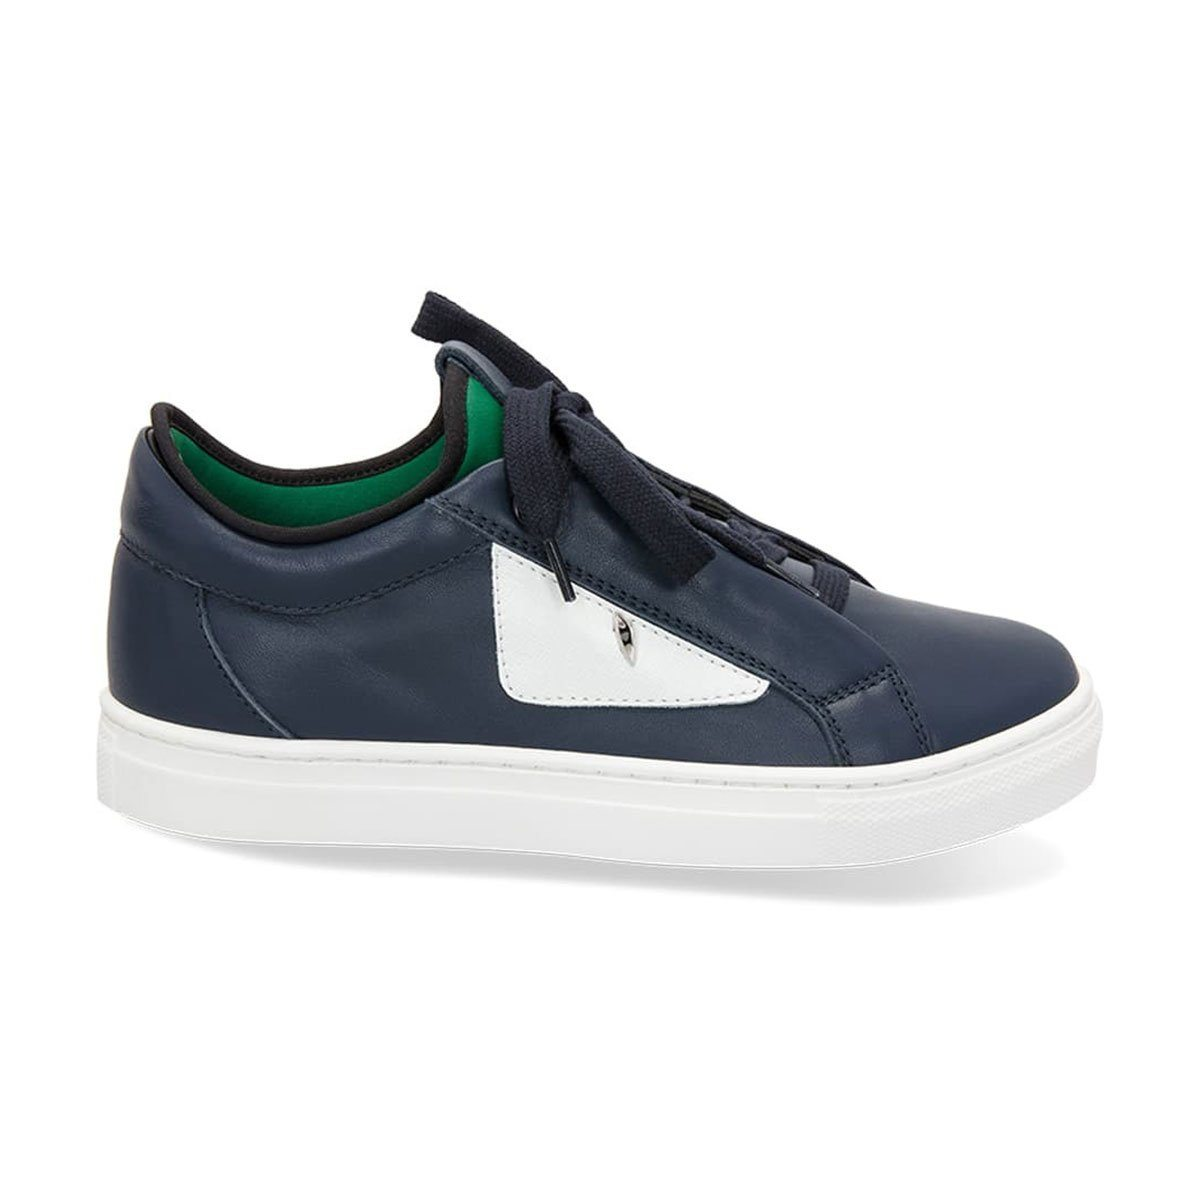 Fendi - Lycra Sneakers For Boys, Green